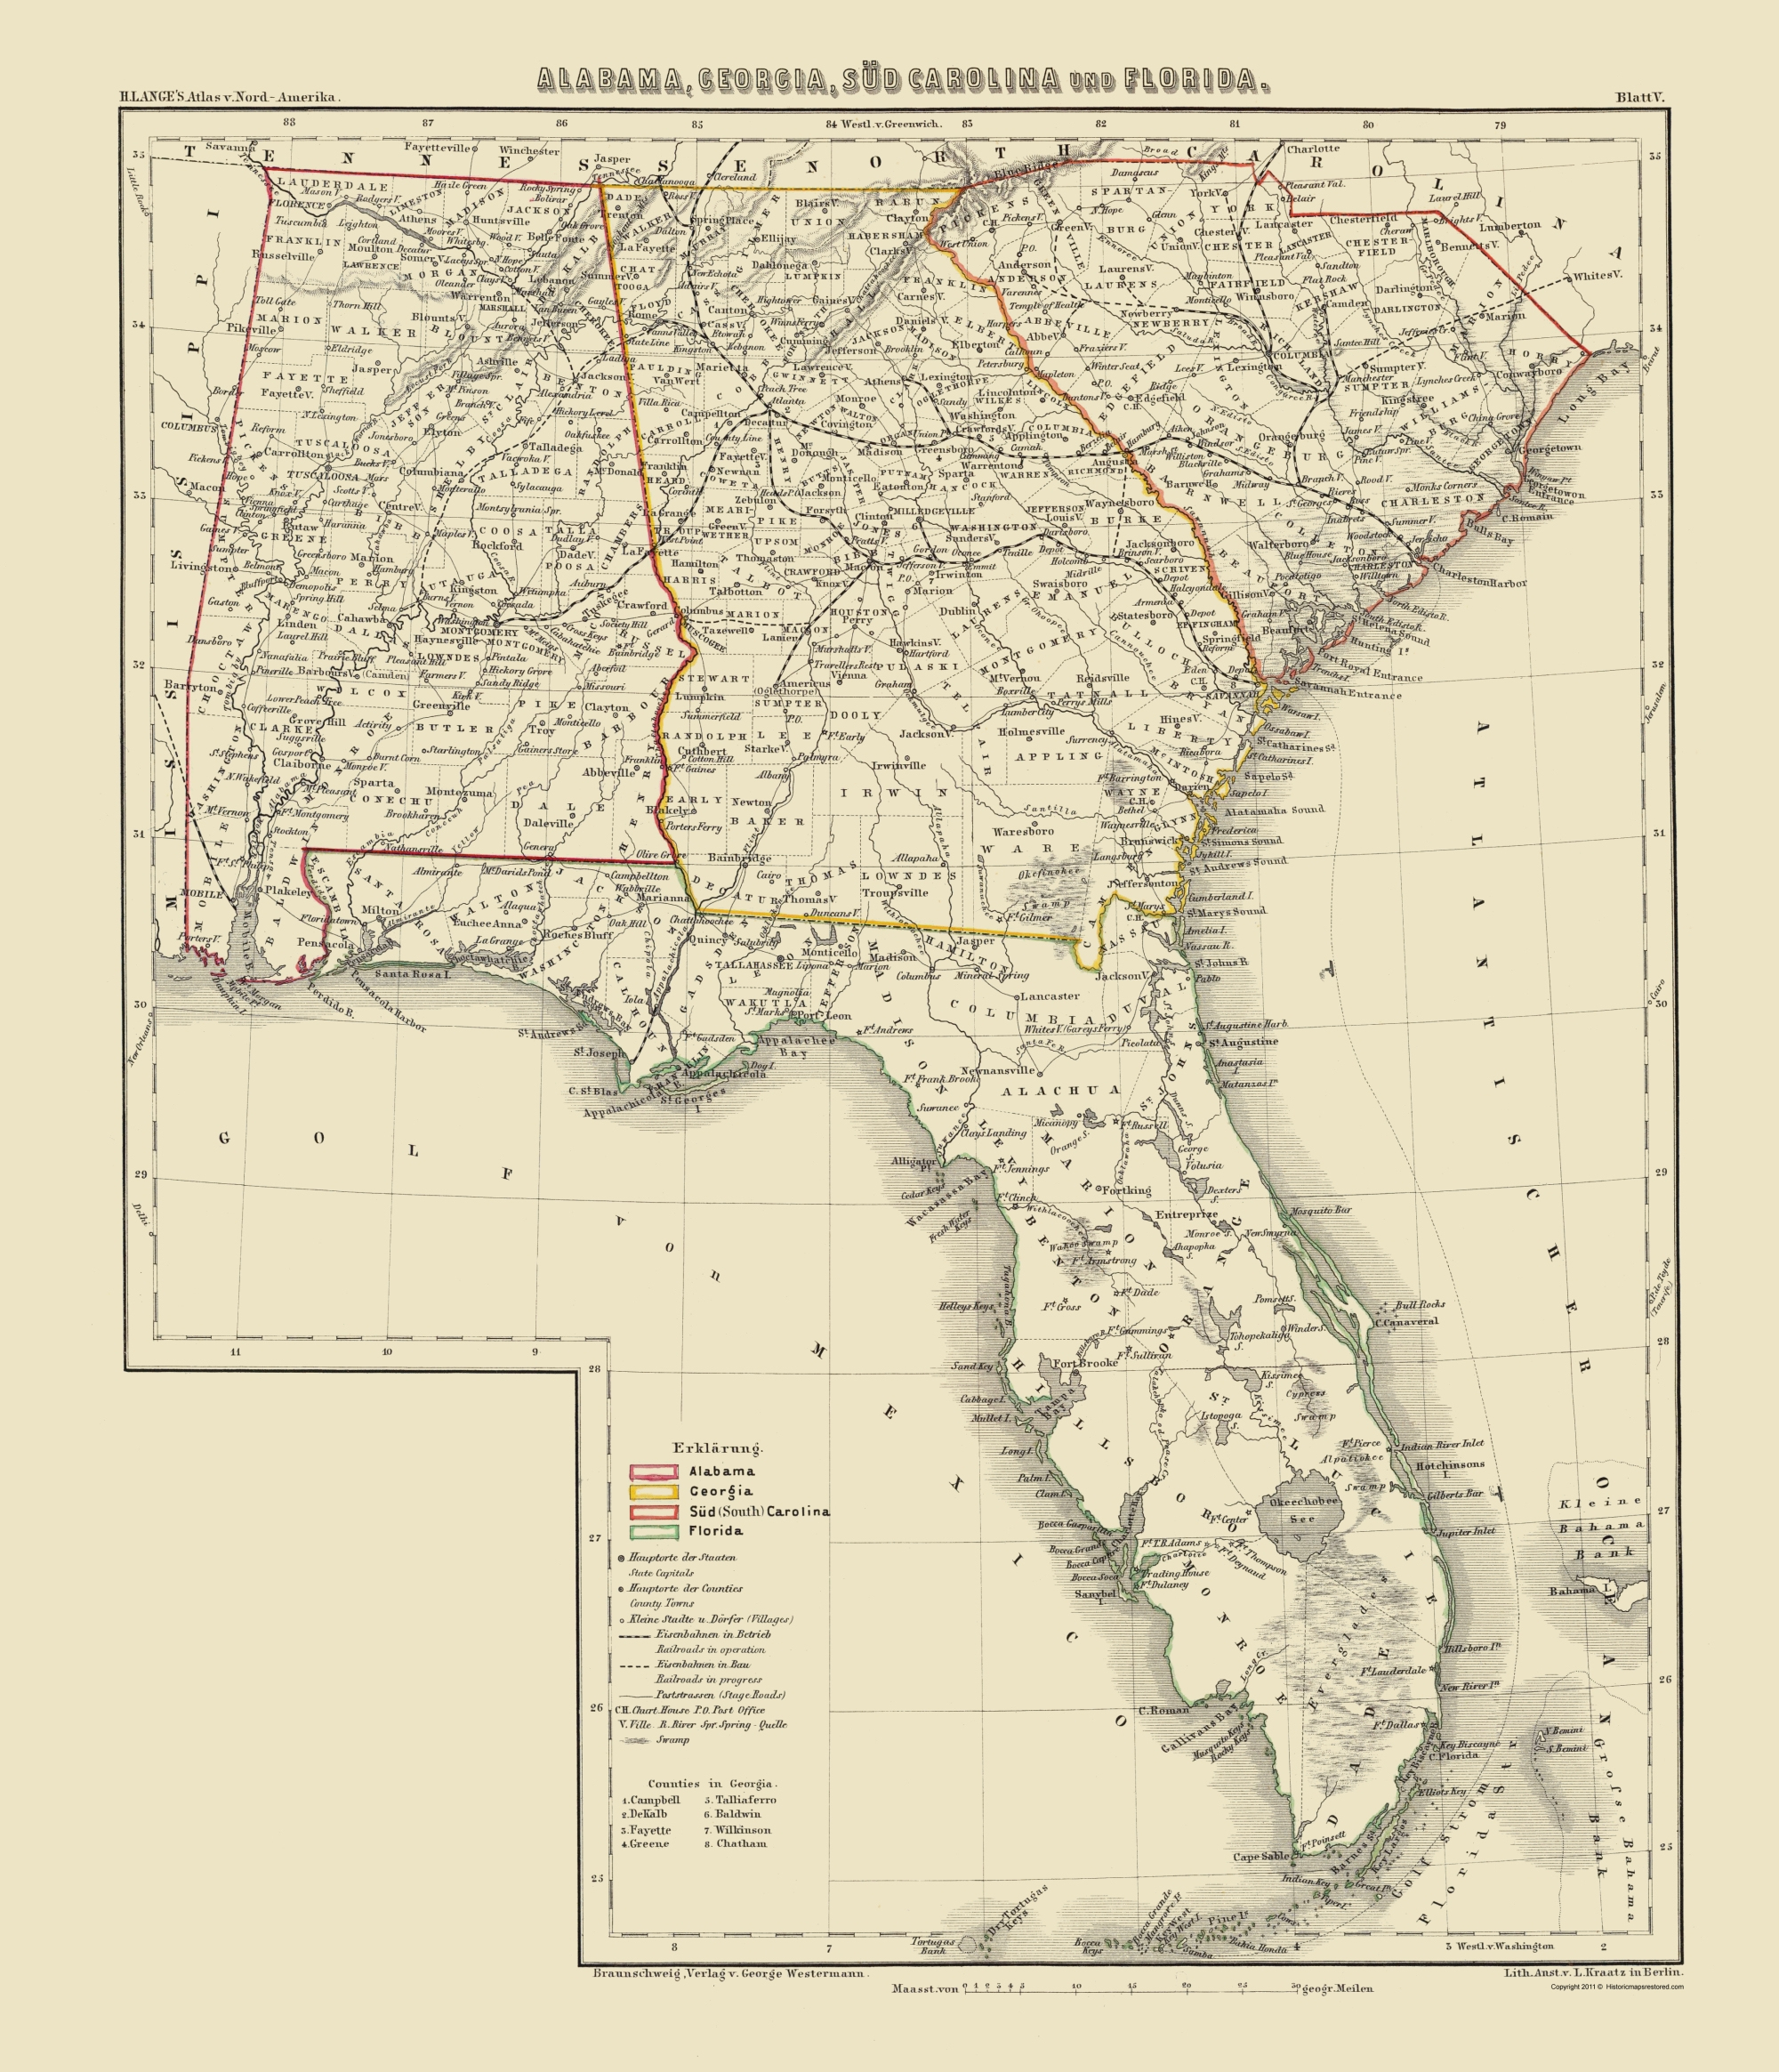 Old Map - Alabama, Georgia, South Carolina, Florida 1854 - Map Of Alabama And Florida